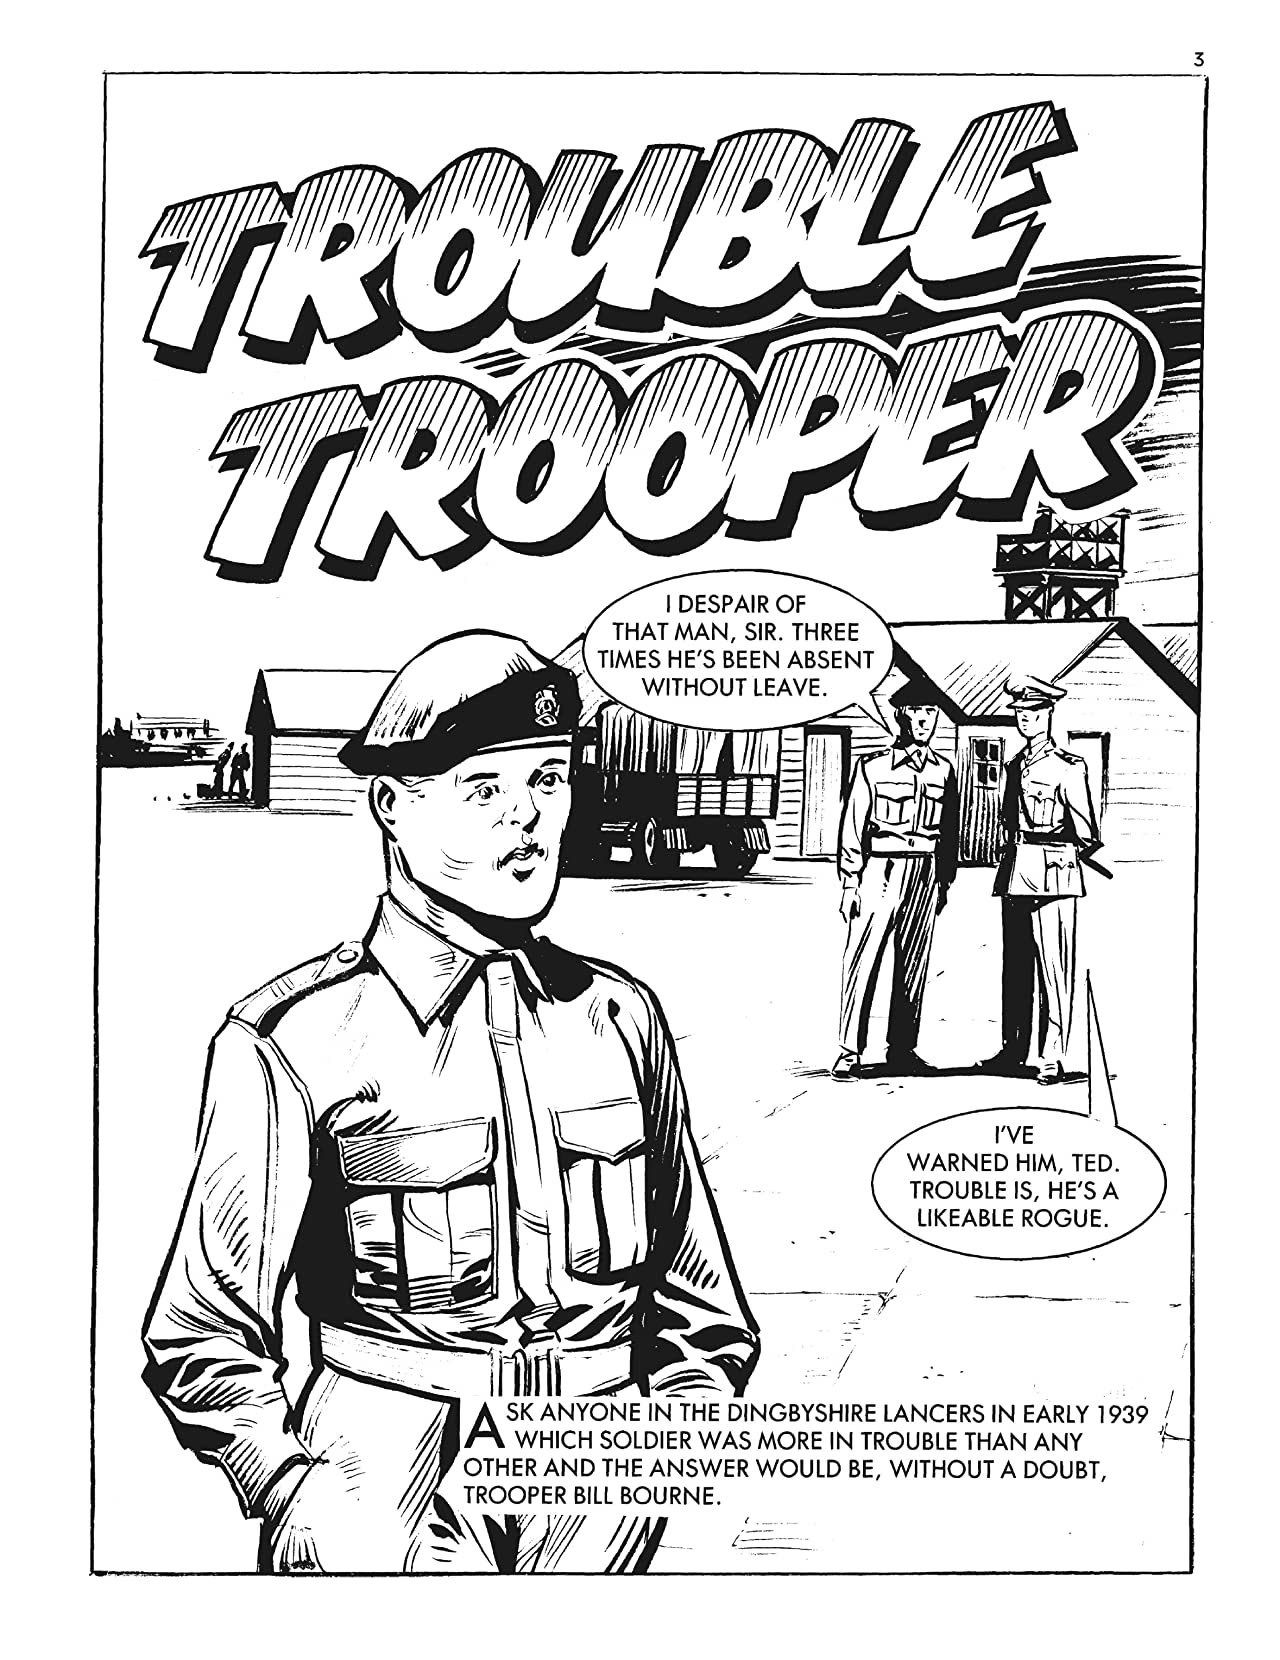 Commando #5022: Trouble Trooper